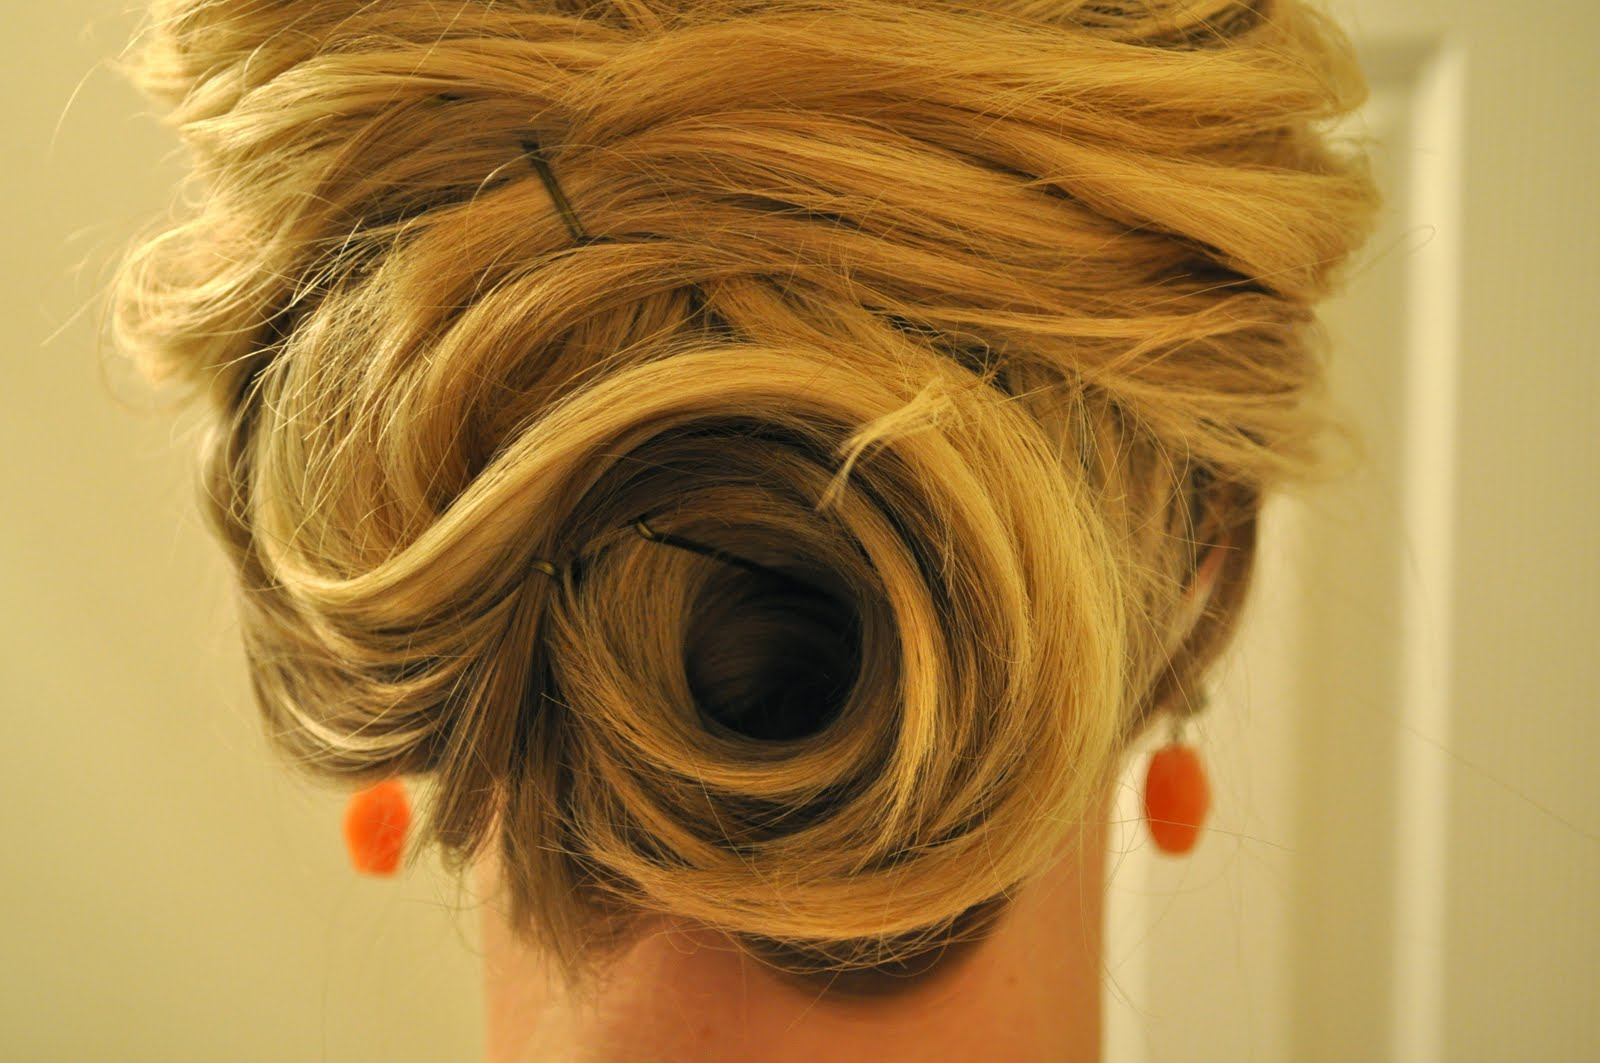 Enjoyable 20 Great Updo Styles For Short Hair Styles Weekly Hairstyles For Women Draintrainus